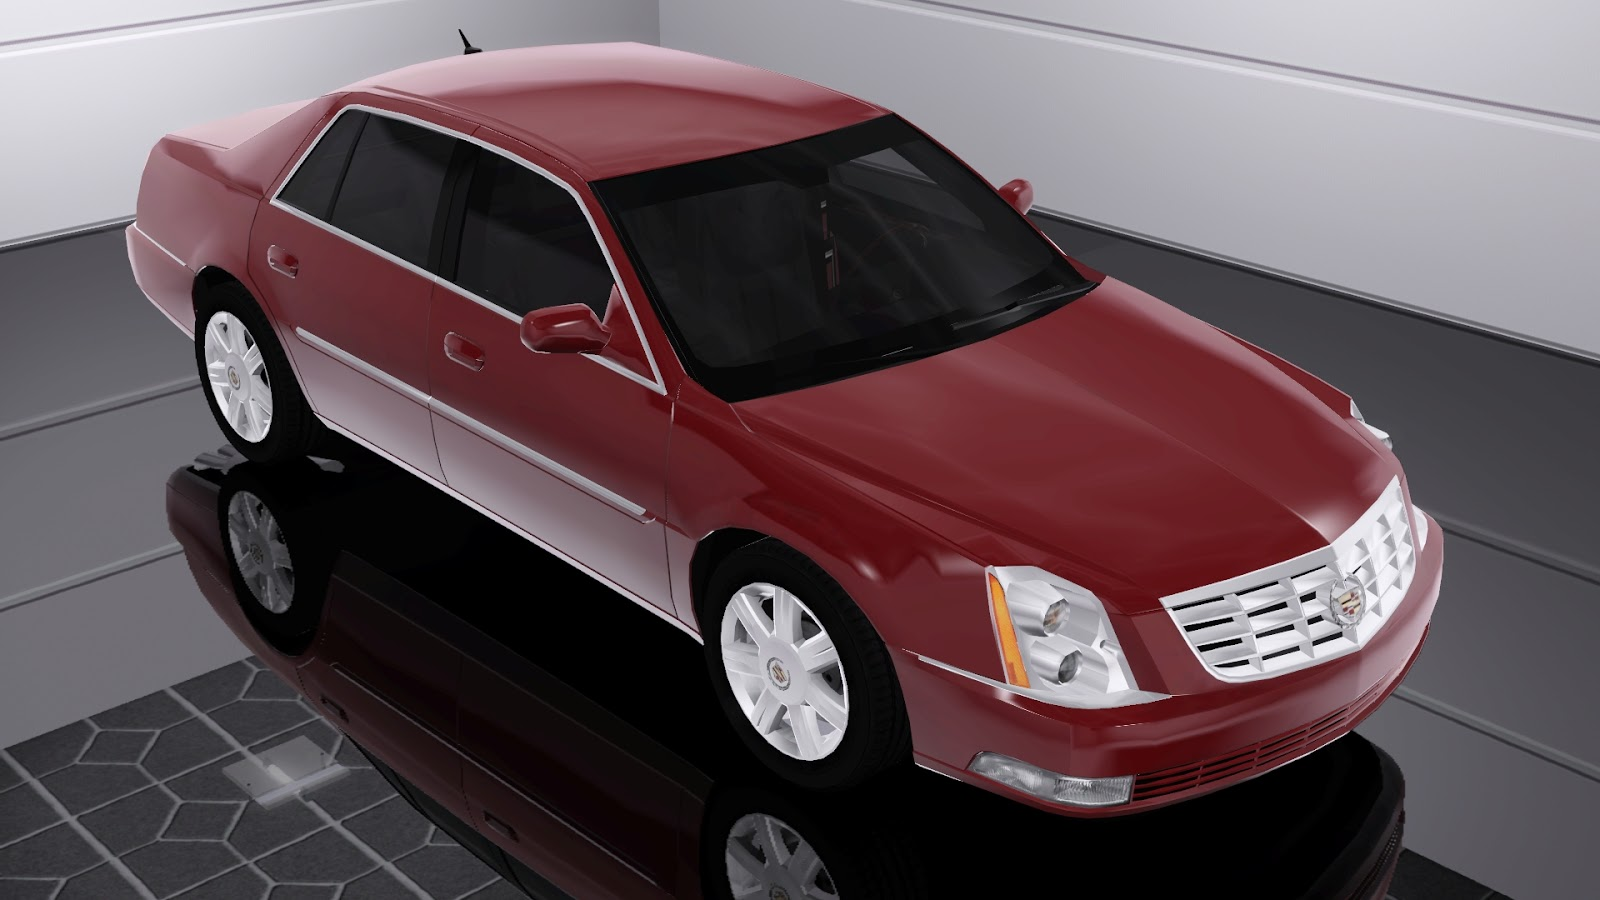 my sims 3 blog 2006 cadillac dts by fresh prince. Black Bedroom Furniture Sets. Home Design Ideas